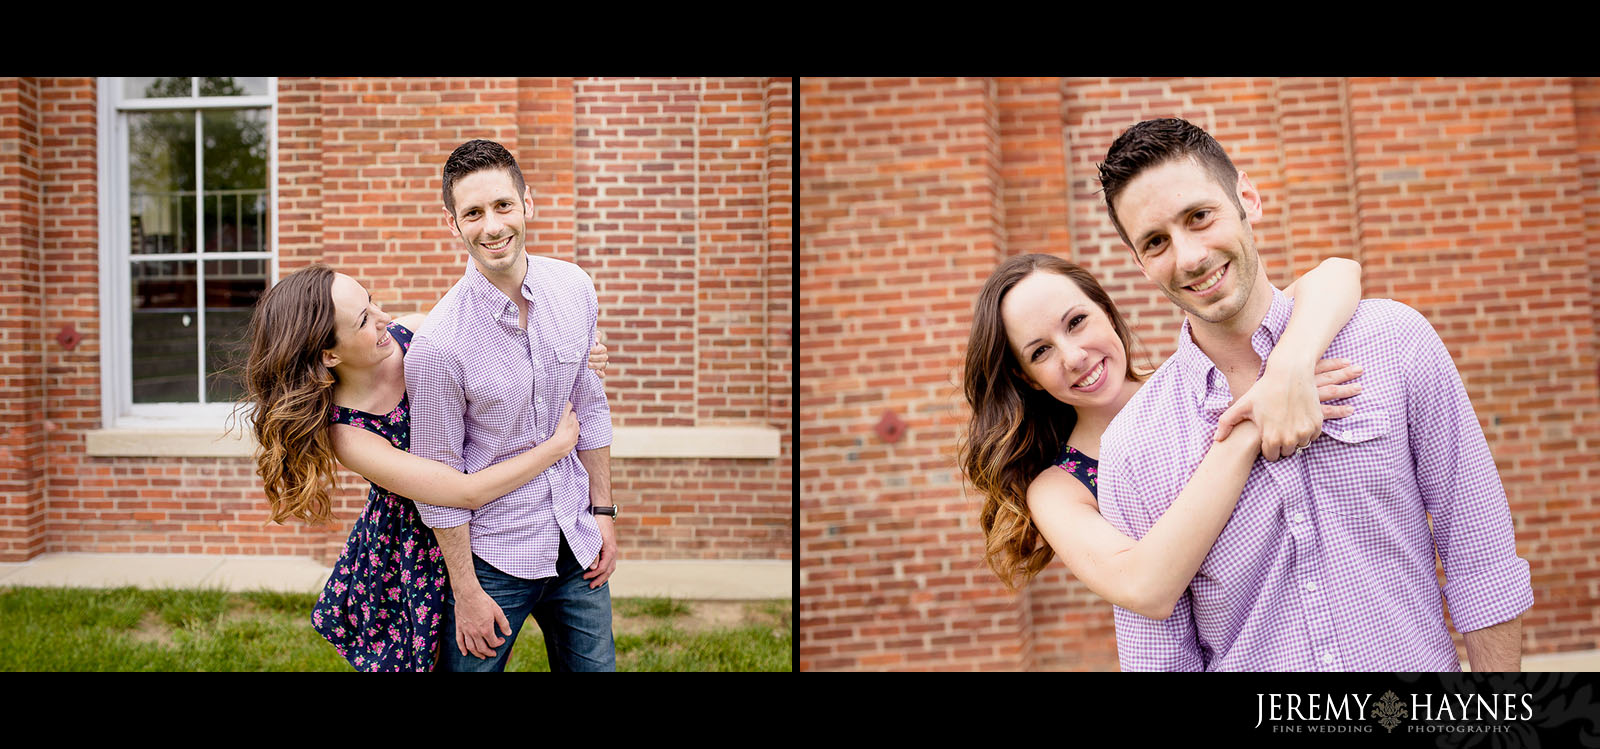 best-indianapolis-engagement-photographers-jeremy-haynes-photography.jpg